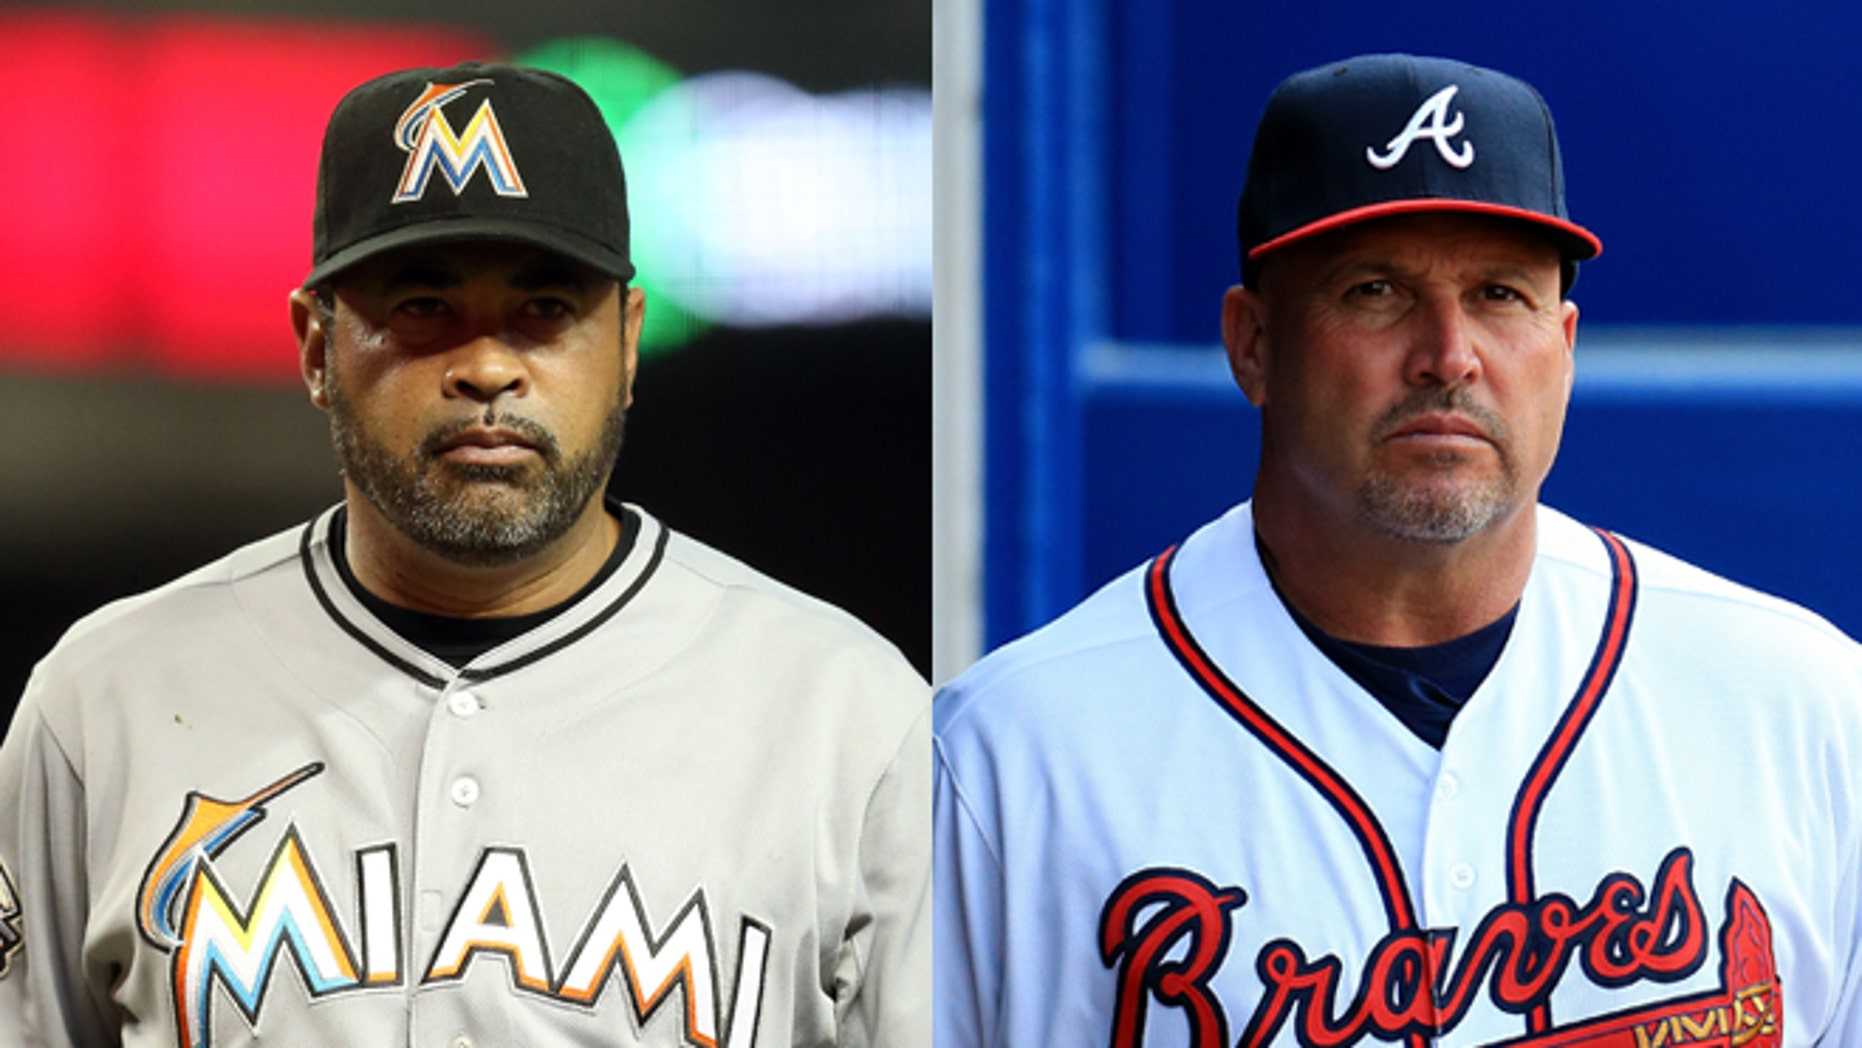 Manager Ozzie Guillen (left) of the Miami Marlins and Manager Fredi Gonzalez (right) of the Atlanta Braves. (Photos by Getty Images)